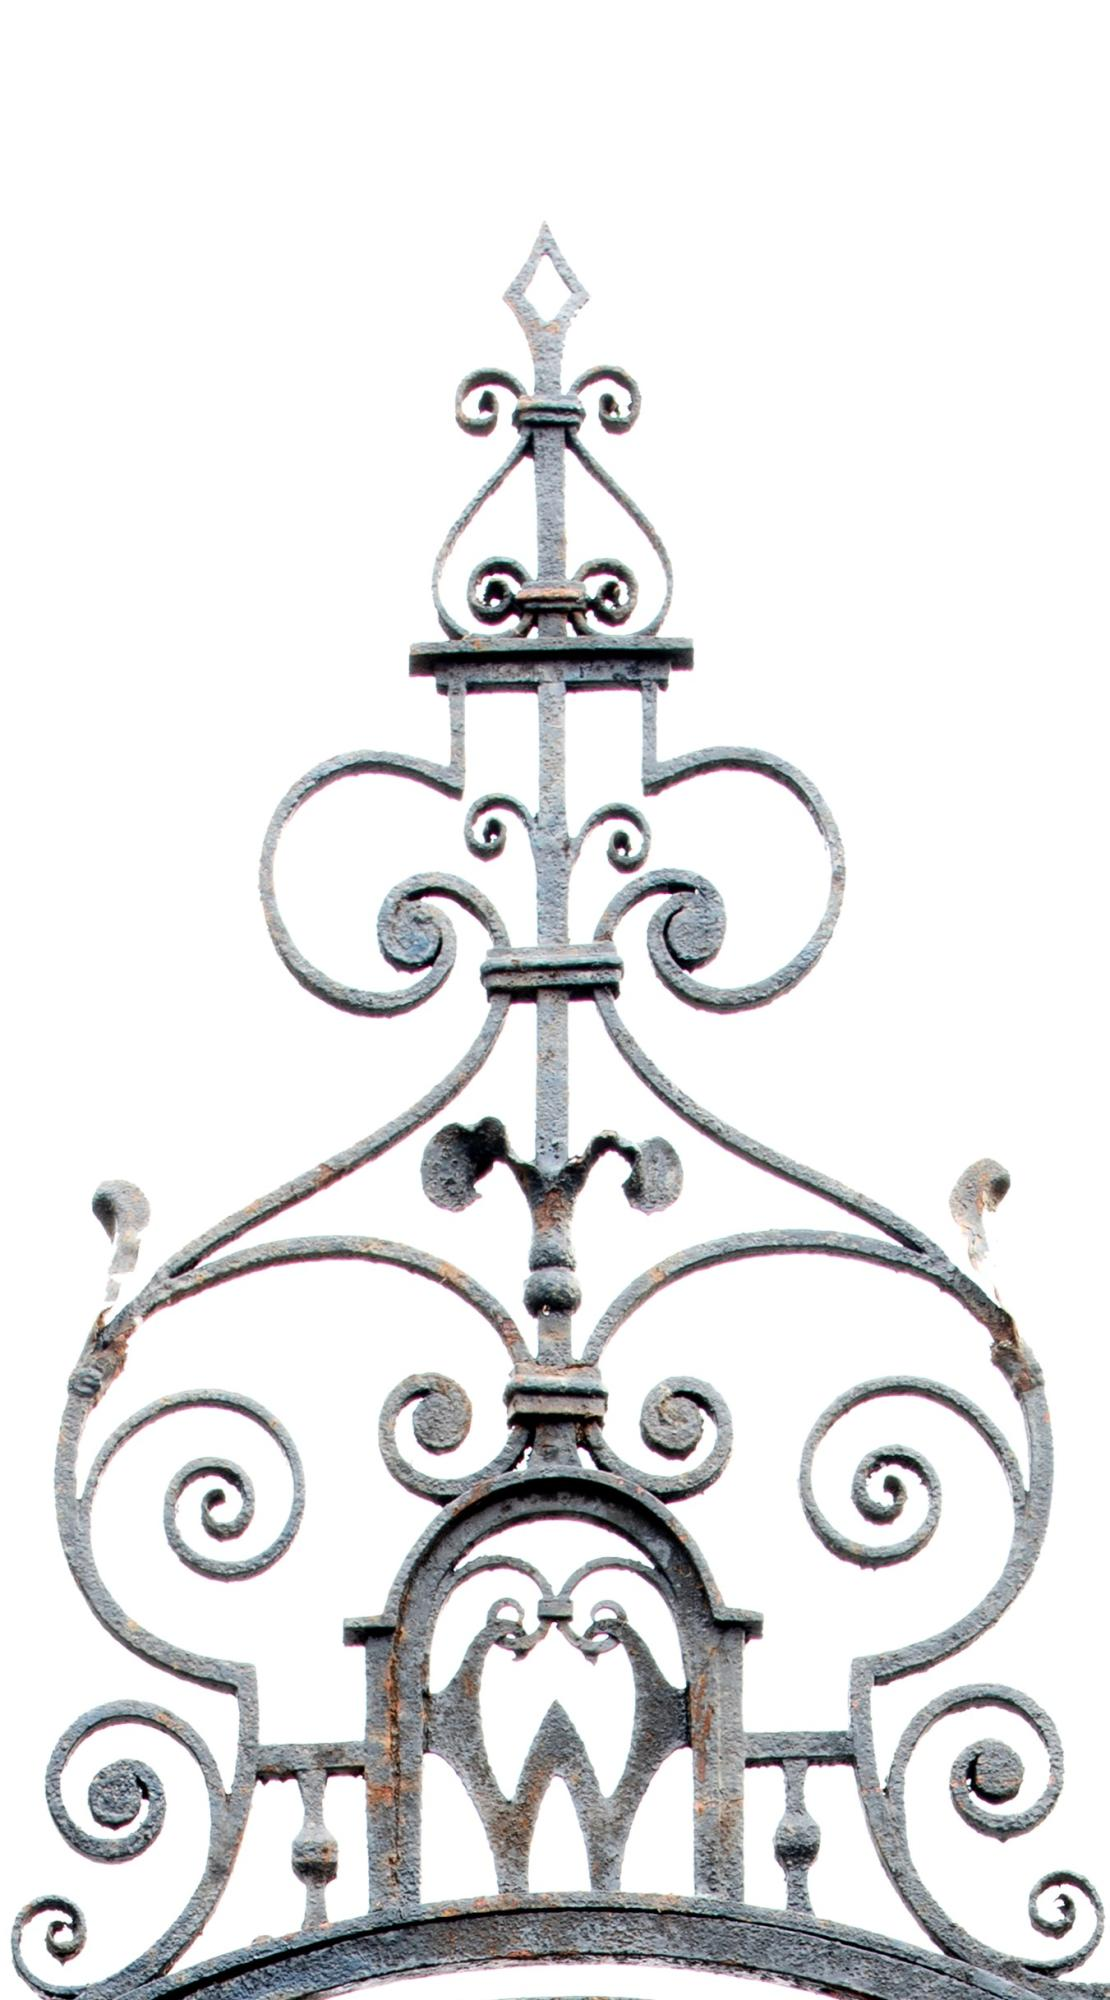 Lot 206 - Architectural/Gates: An impressive Georgian style wrought entranceway last quarter 19th century with